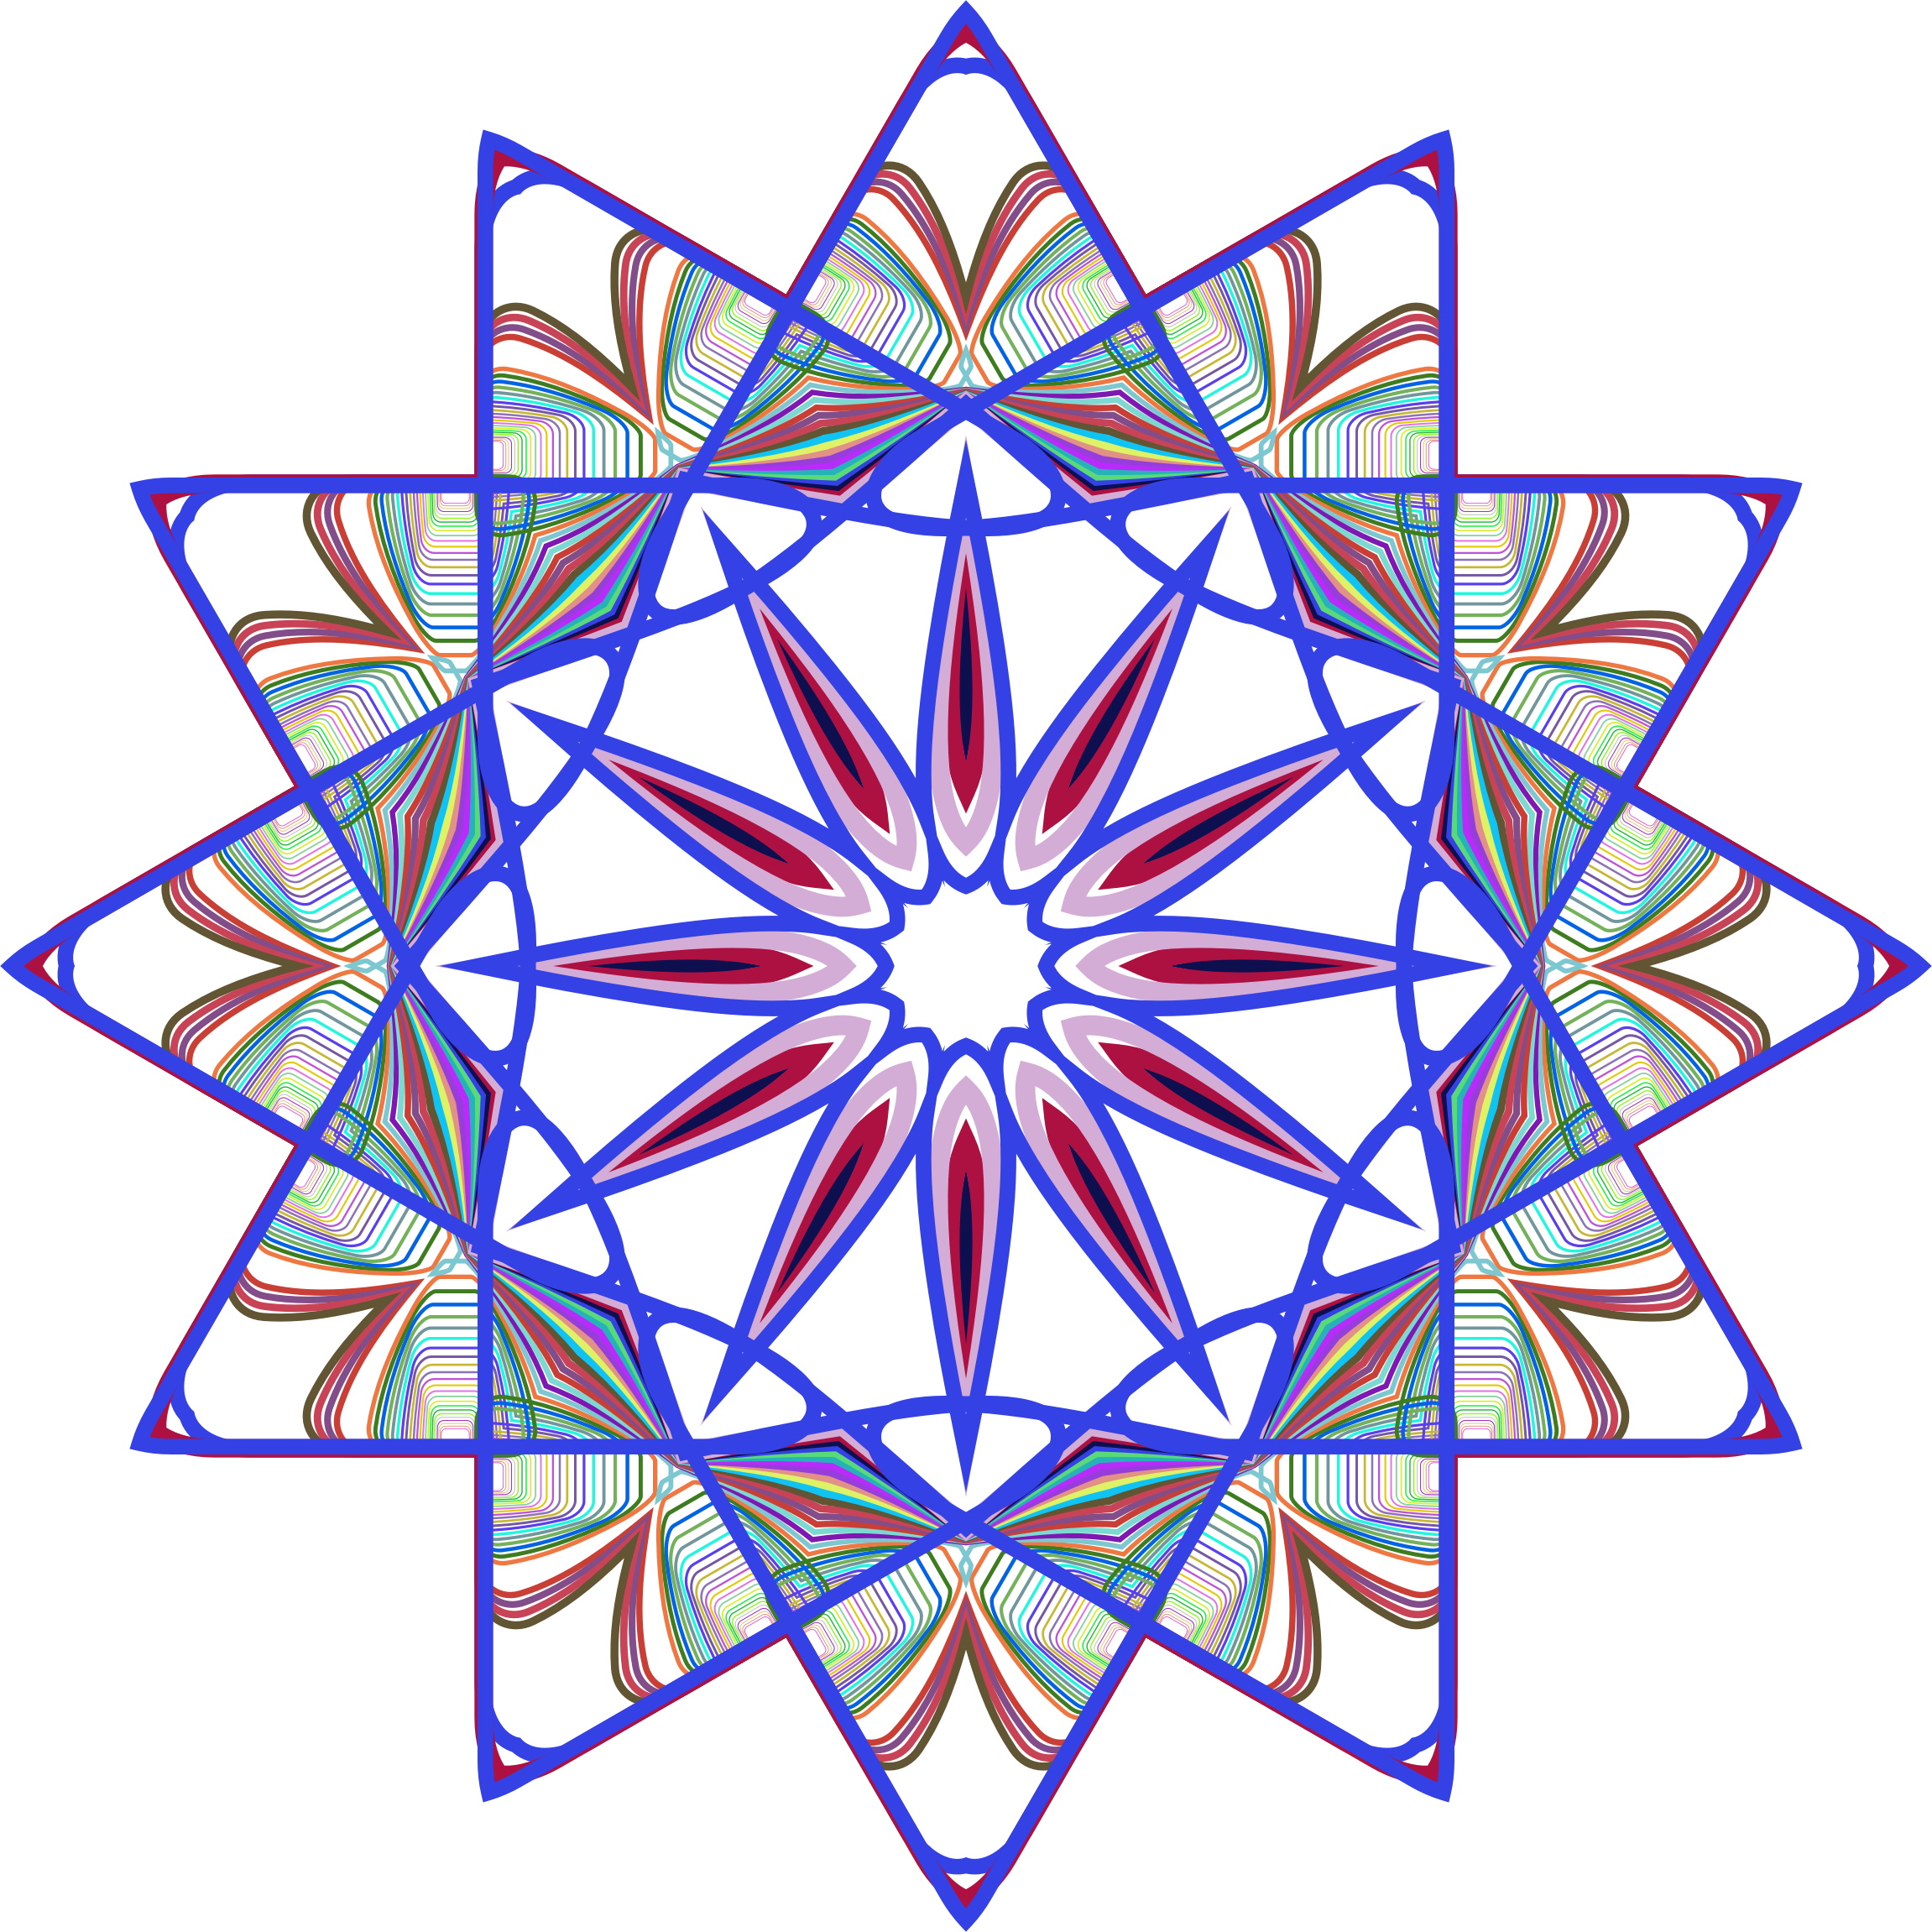 Prismatic Mandala Line Art Design 5 No Background by GDJ